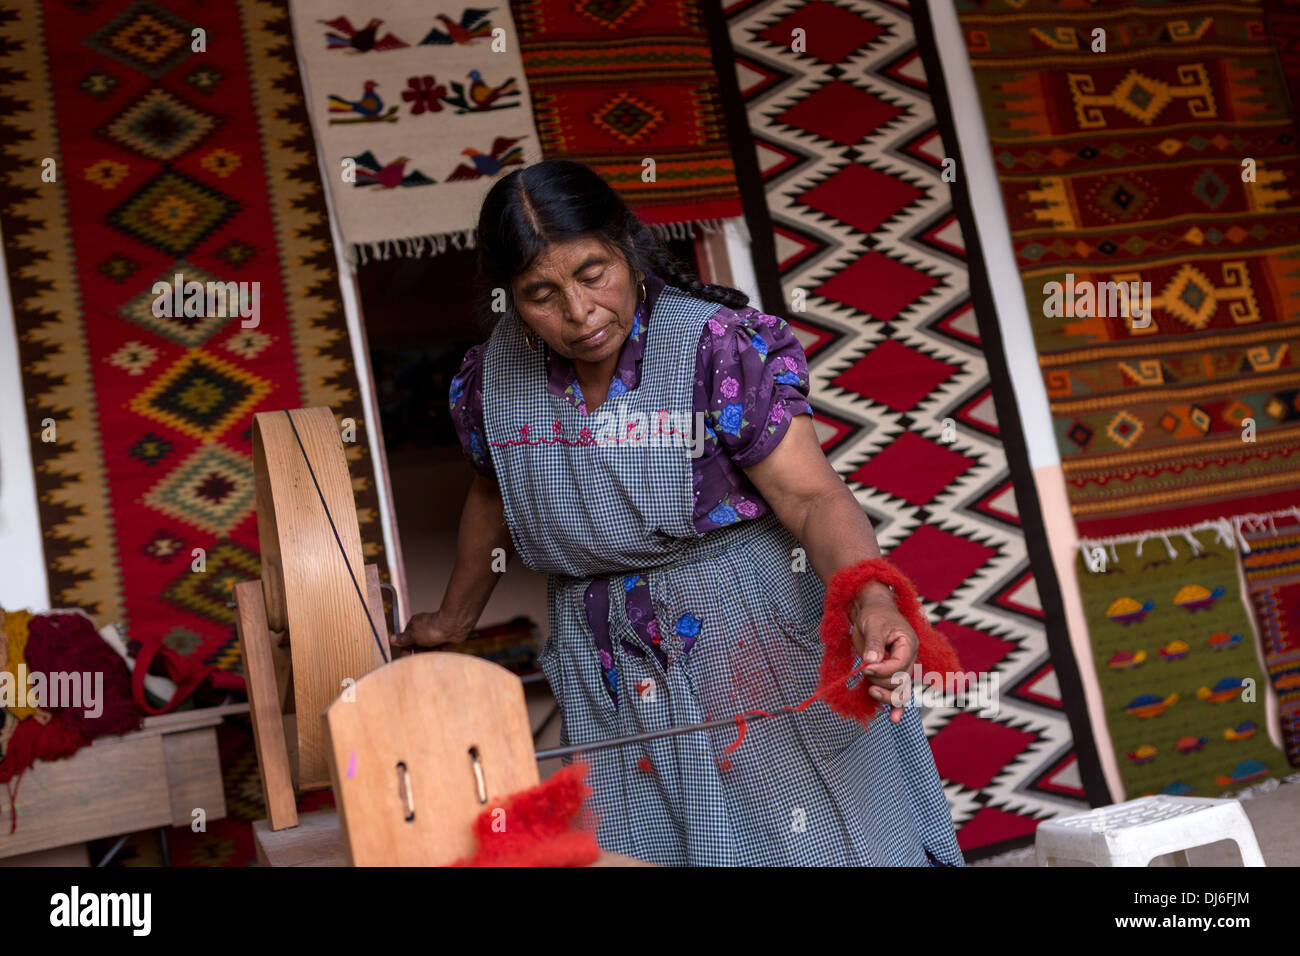 A Zapotec indigenous woman hand spins dyed wool into yarn to be used in weaving traditional carpets in Teotitlan, Mexico. - Stock Image